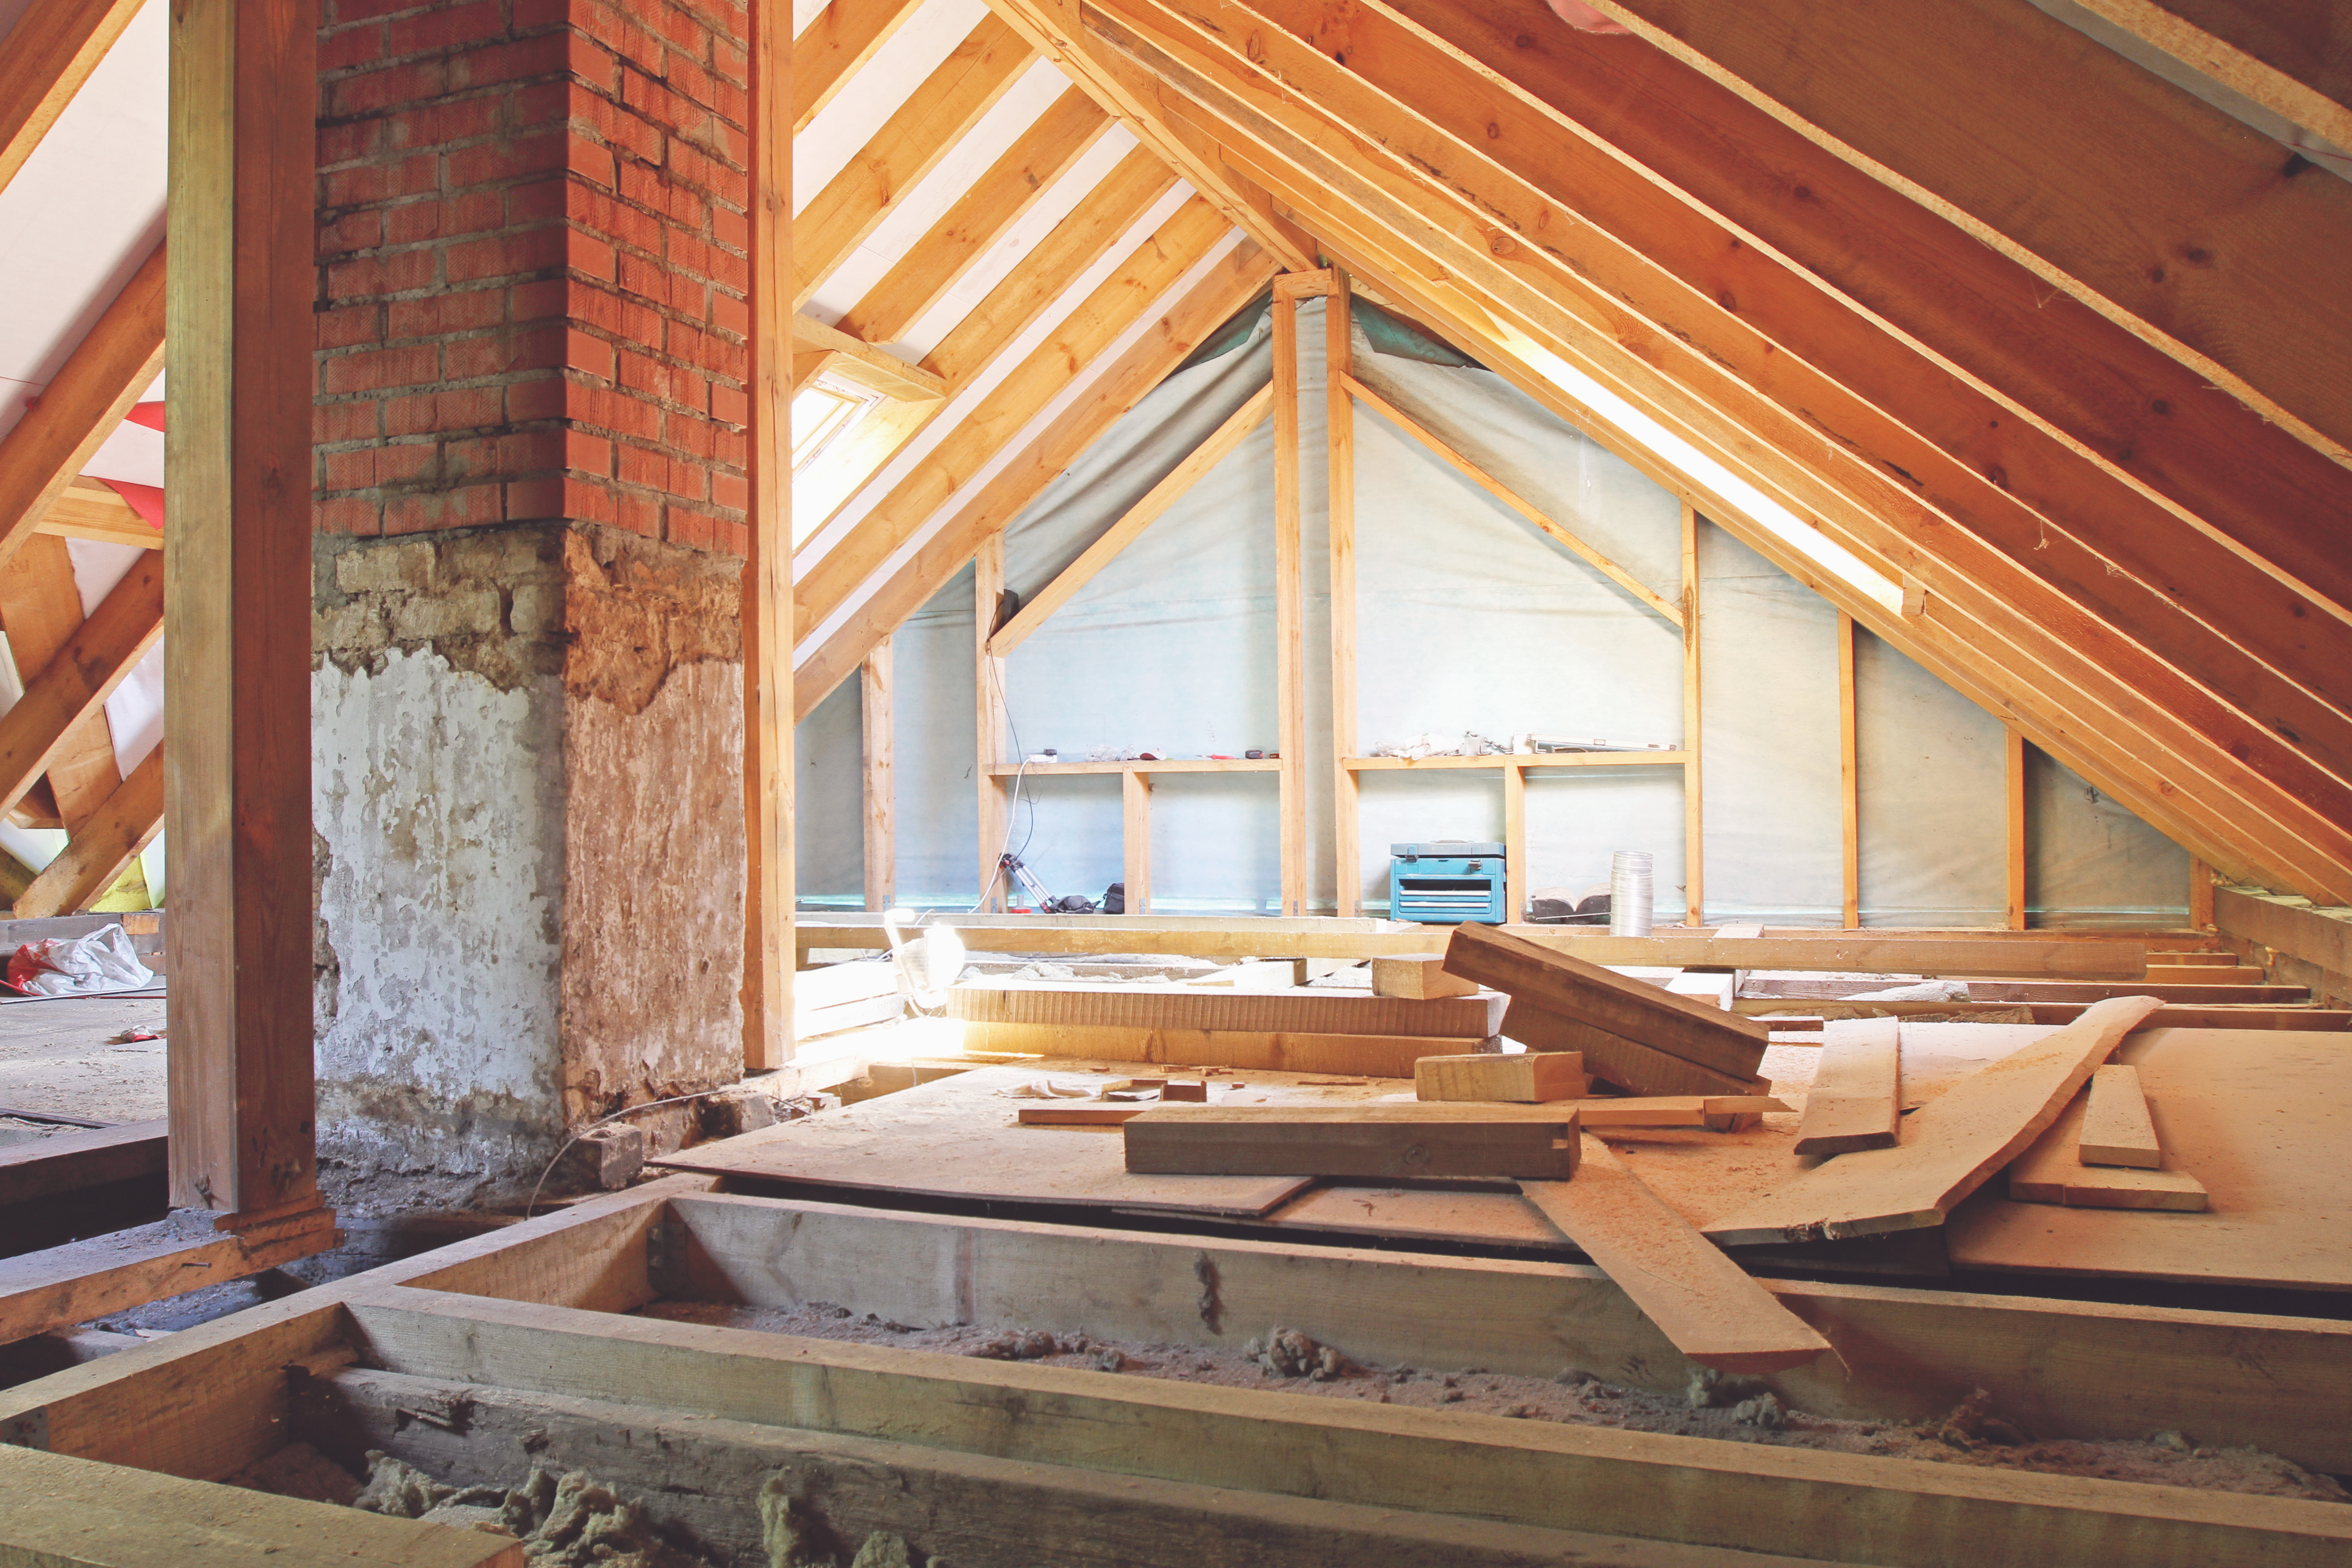 How Much Does it Cost to Finish an Attic?